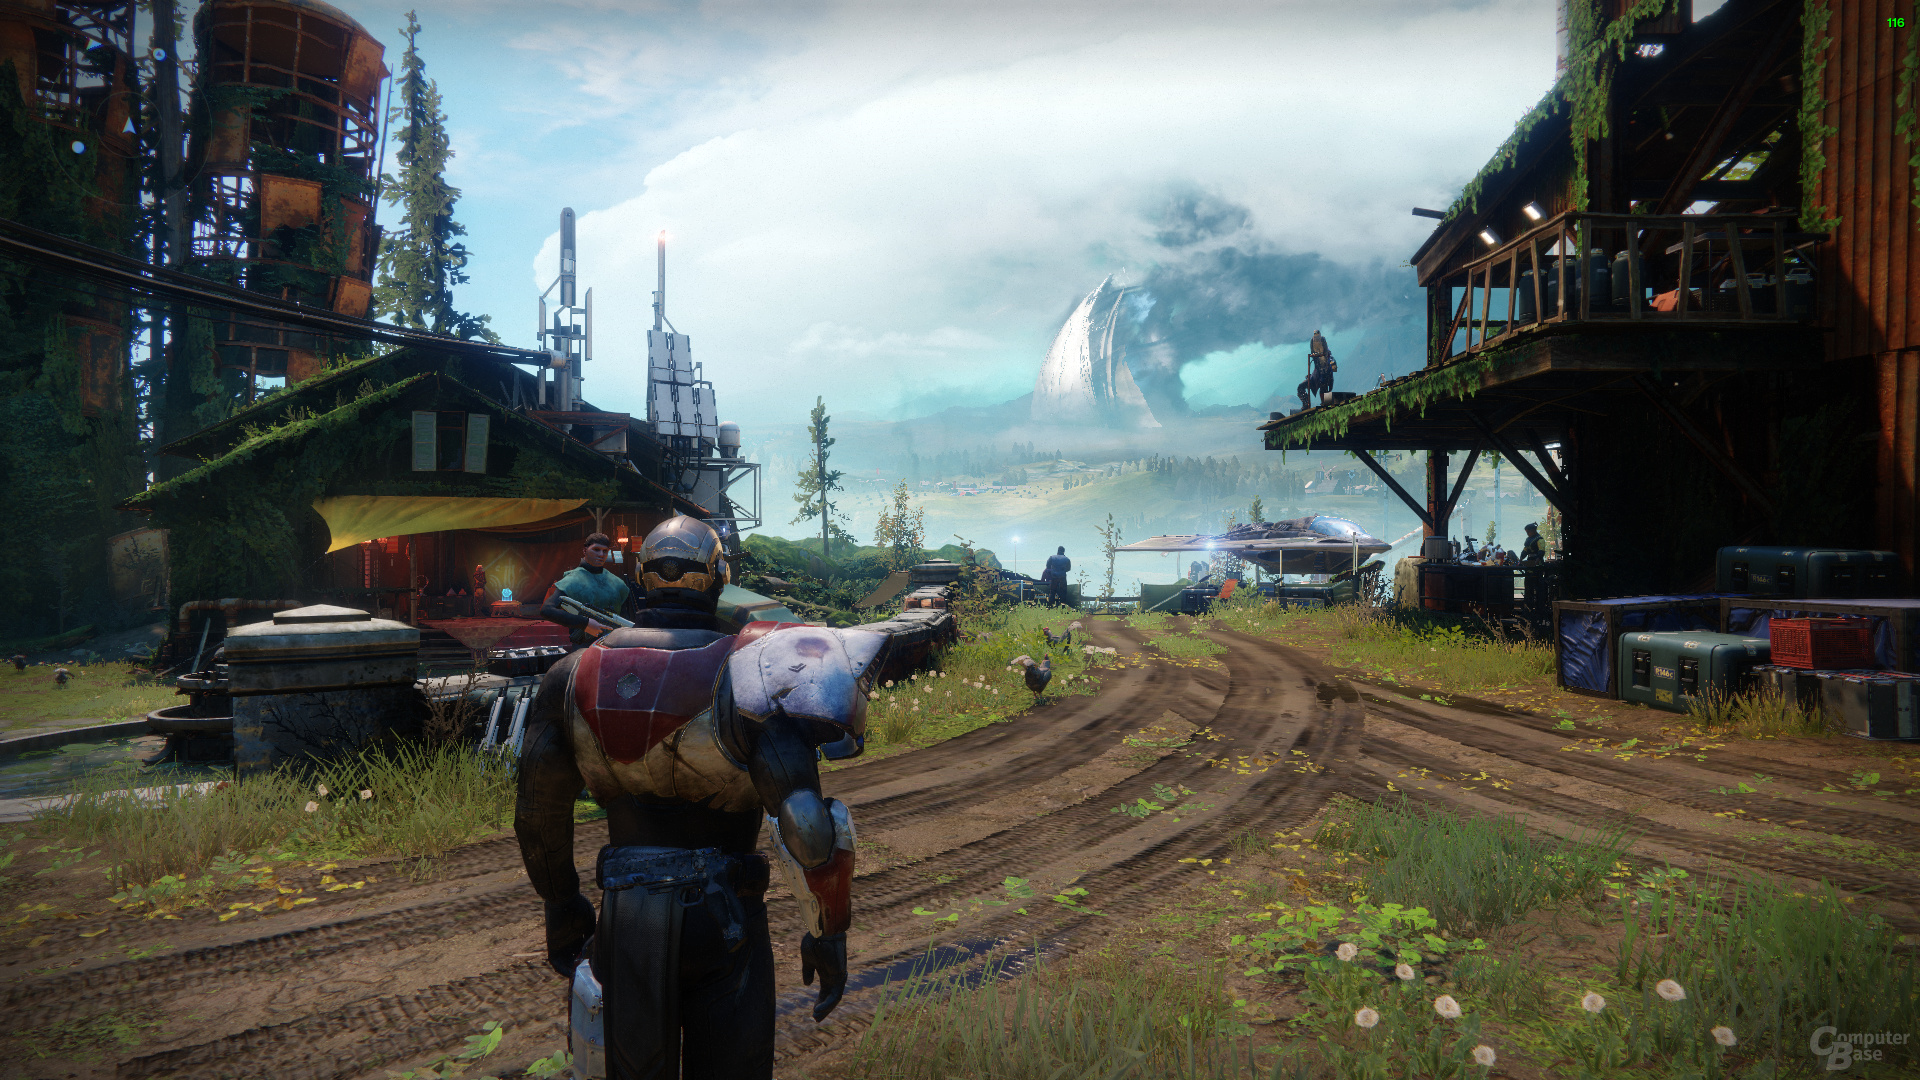 Destiny 2 PSA: Anisotropic levels even at high settings are